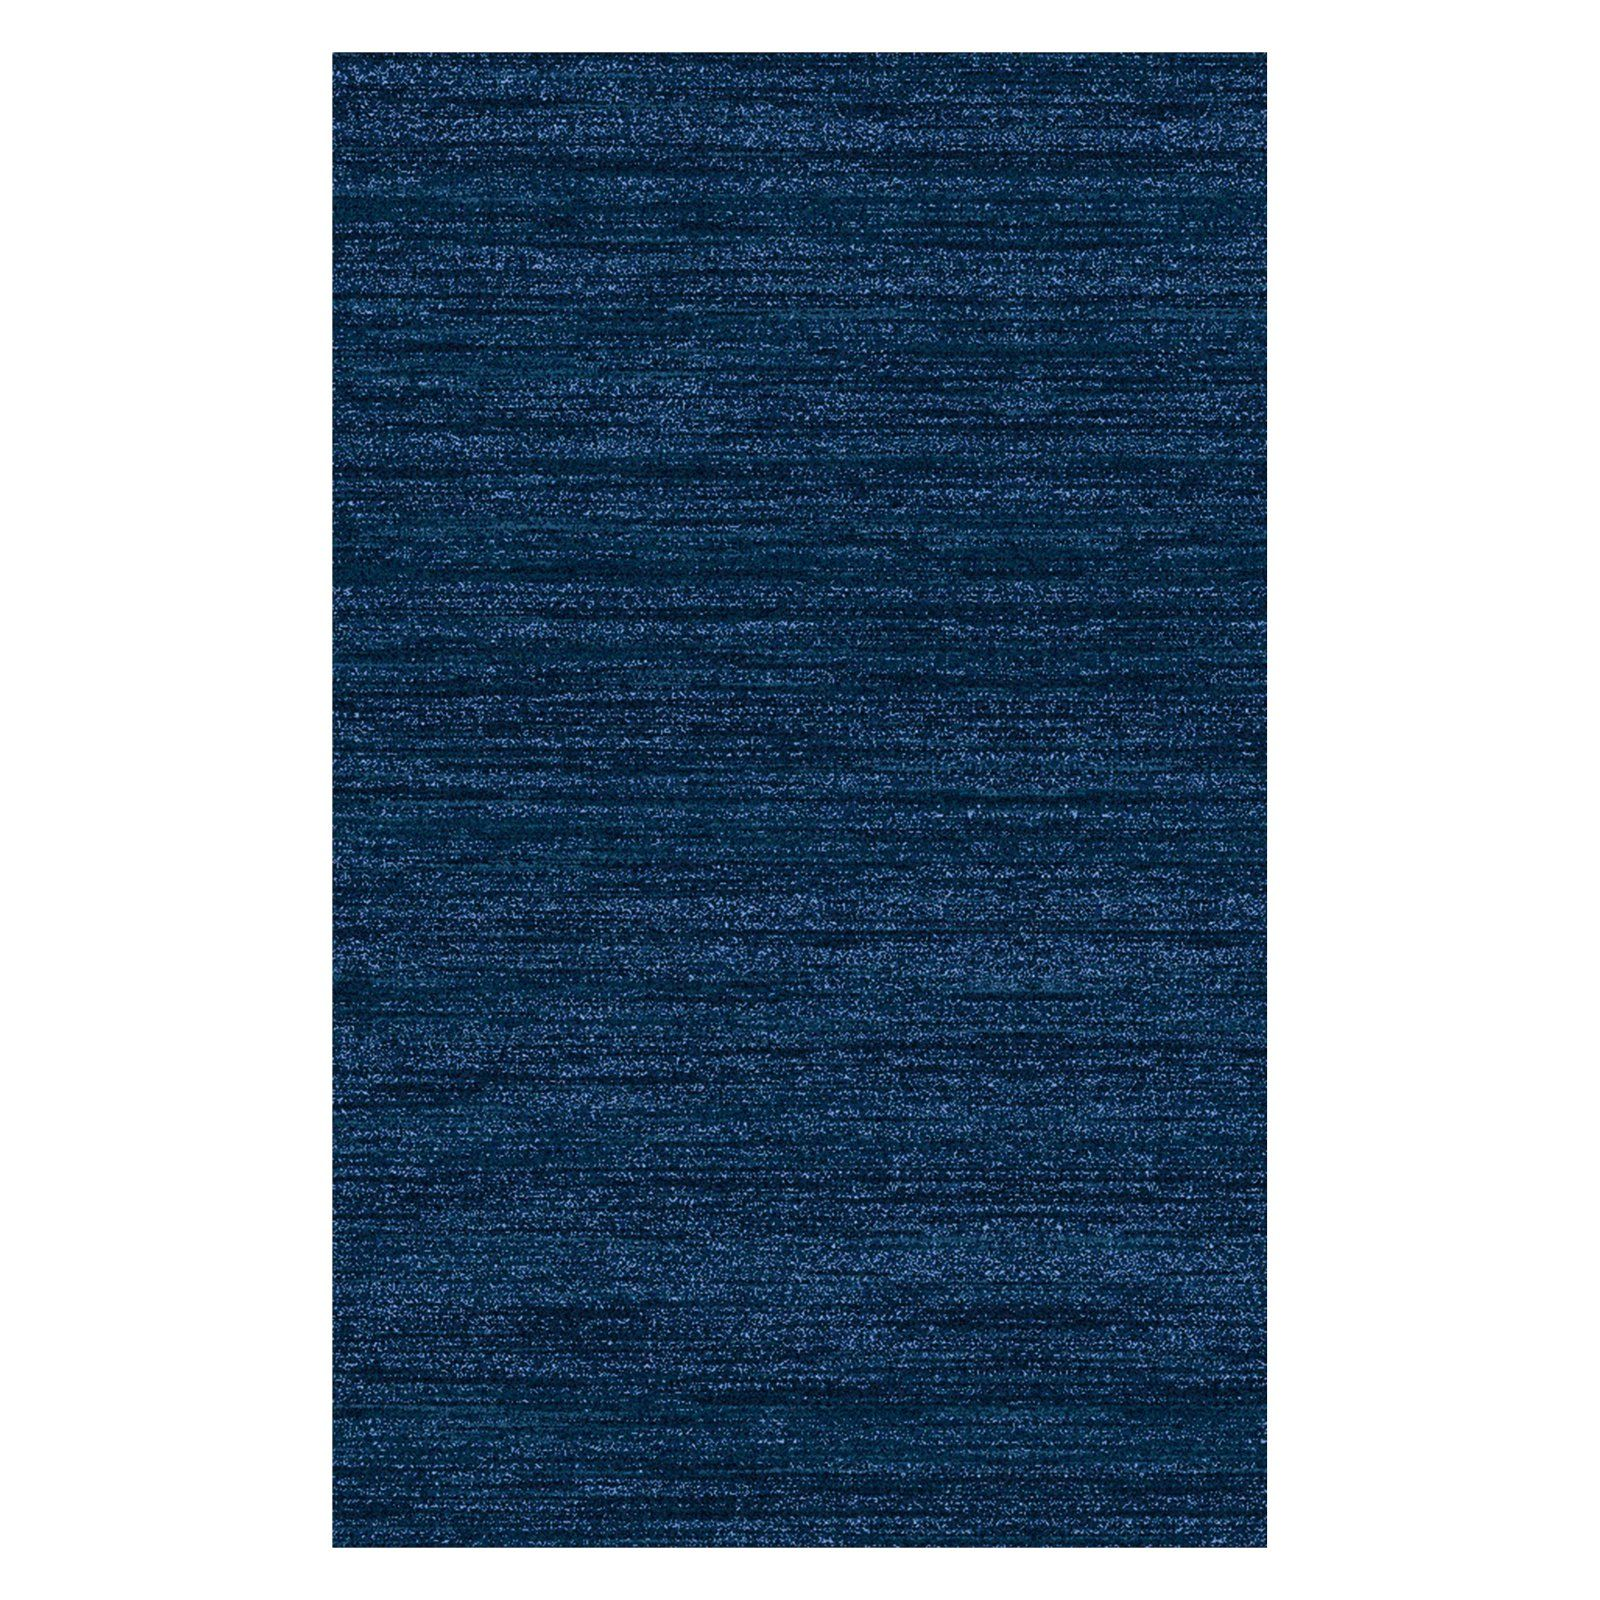 Surya Haize Haz60 Solid Indoor Area Rug Green Area Rugs Rugs Blue Area Rugs